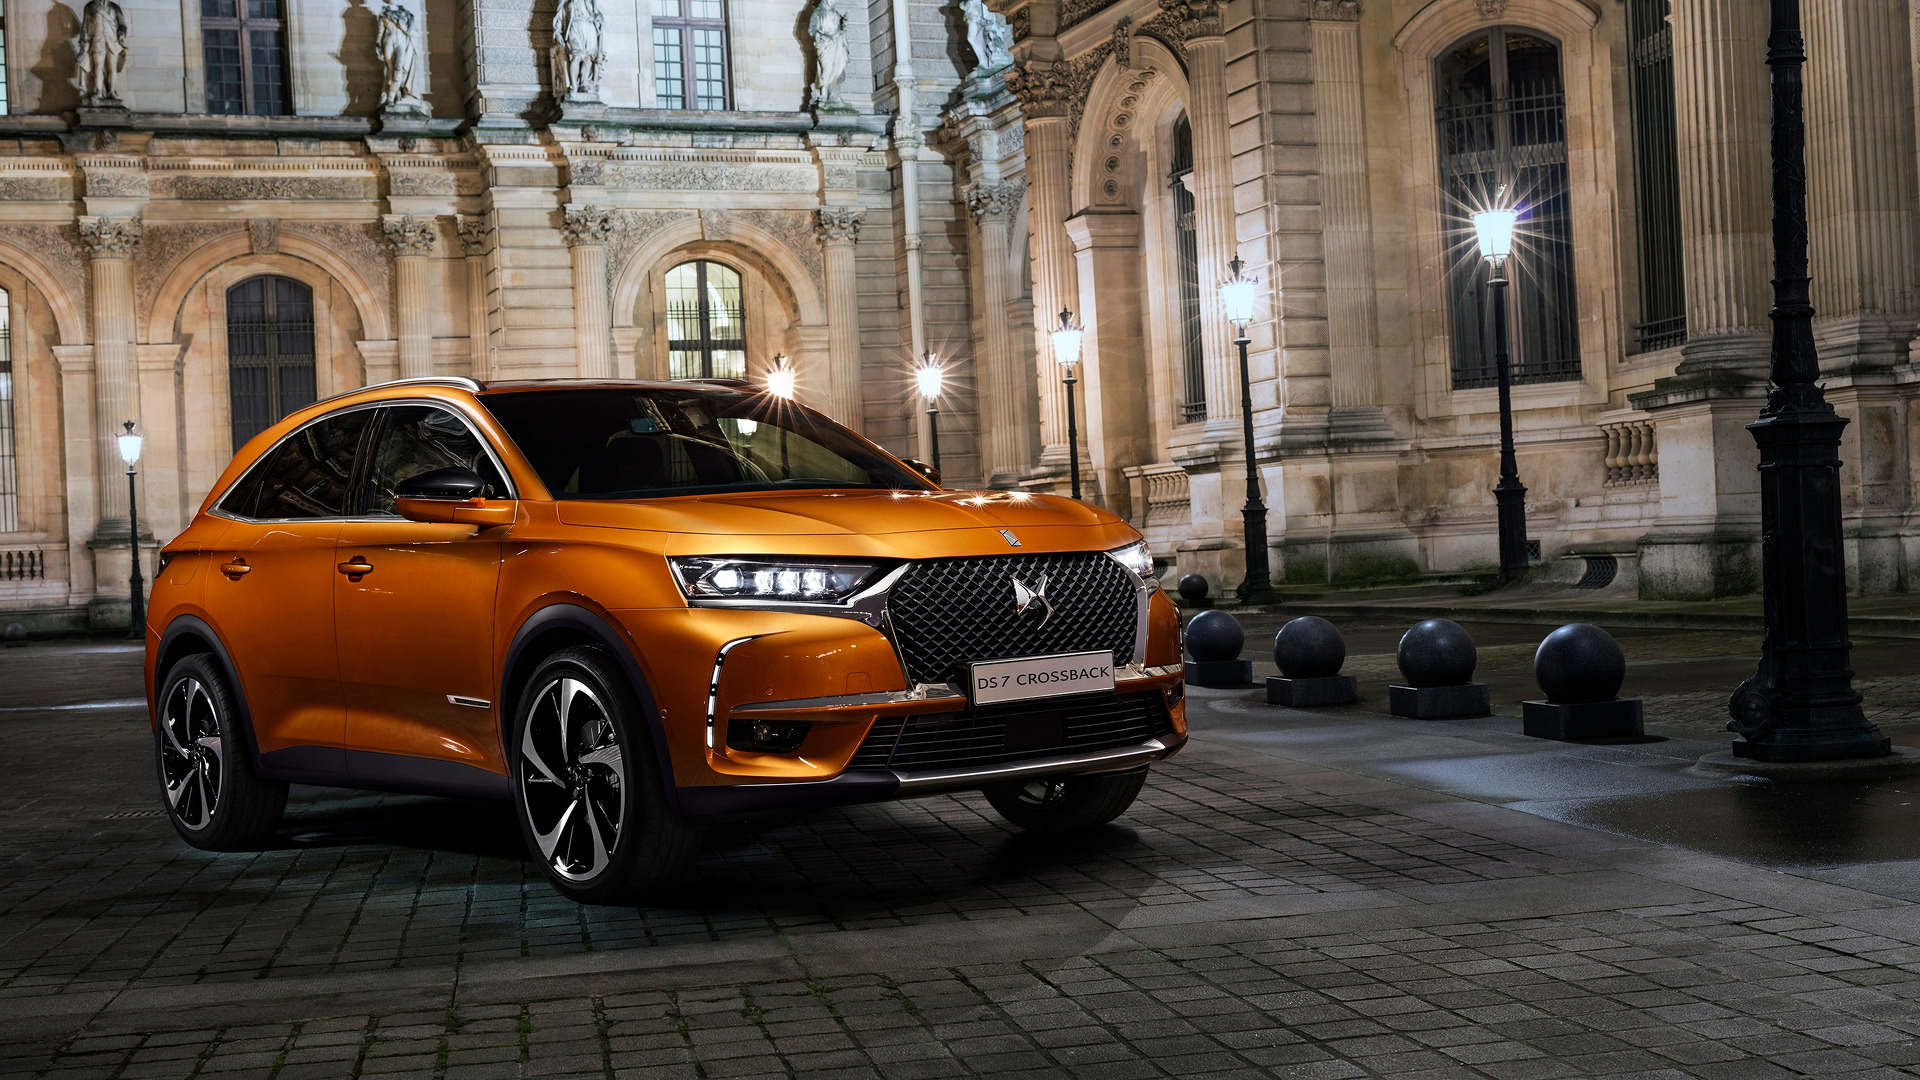 Citroen Ds7 Ds 7 Crossback Suv Debuts With A Hybrid Engine Handsome Design